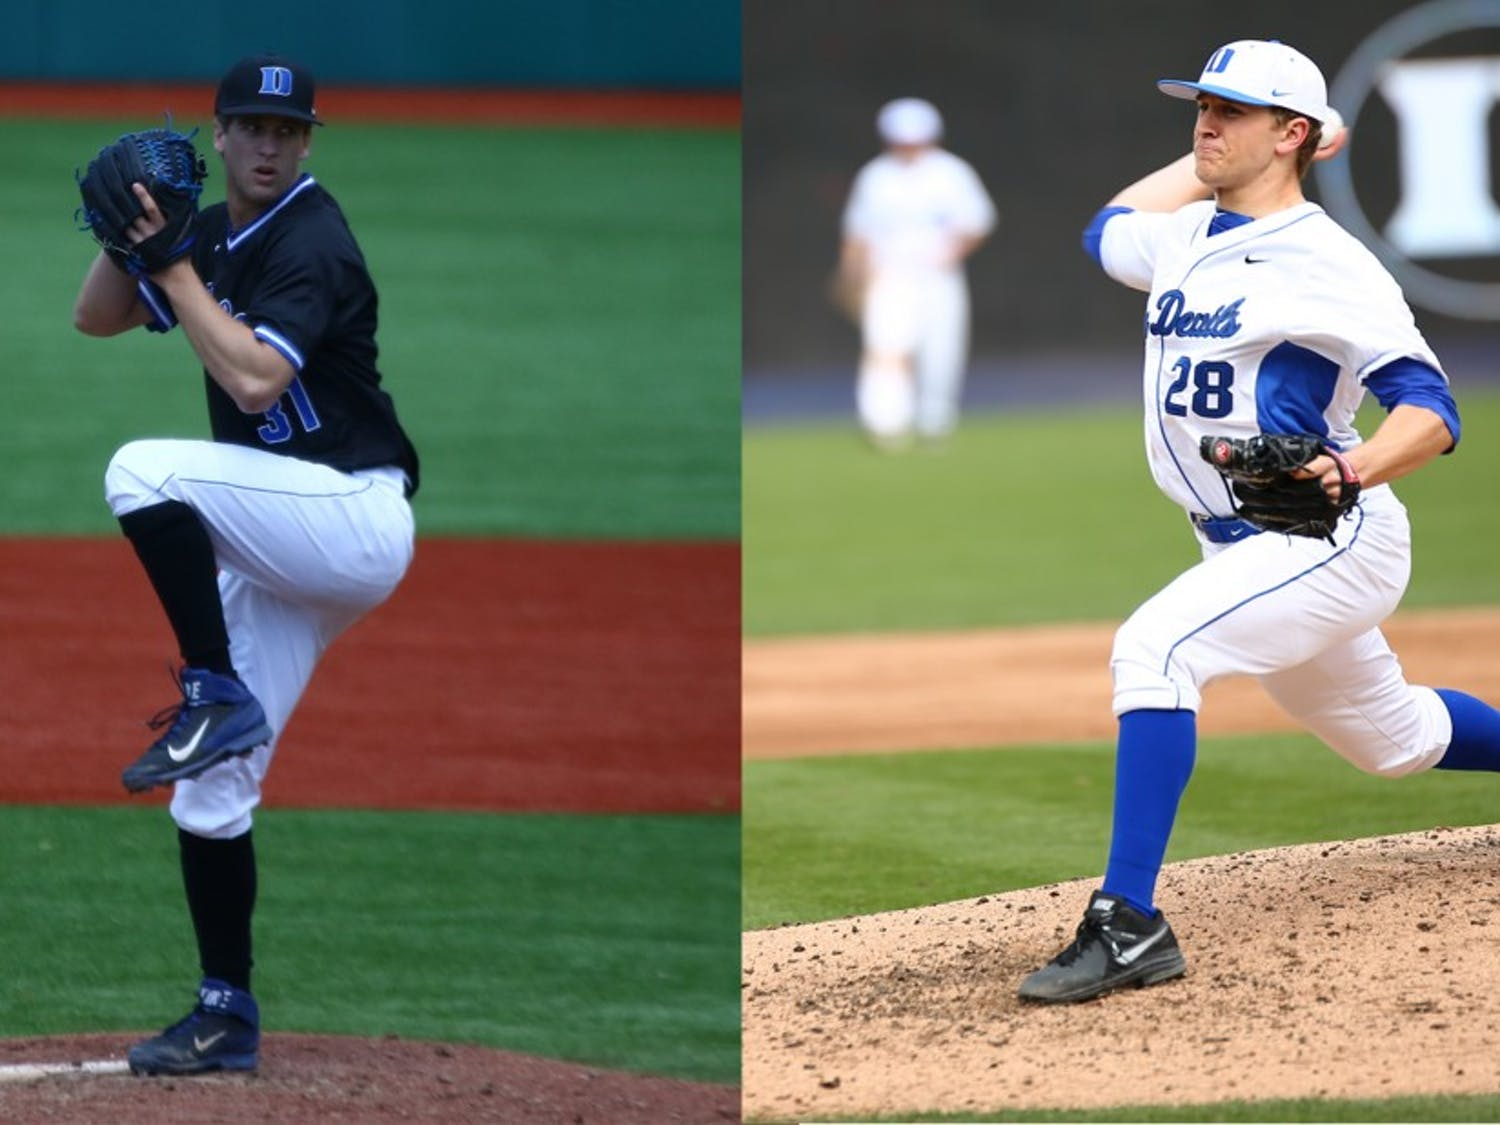 After suffering season-ending injuries at Cornell, Kellen Urbon and Brian McAfee each gained an extra year of eligibility that brought the duo to Duke.